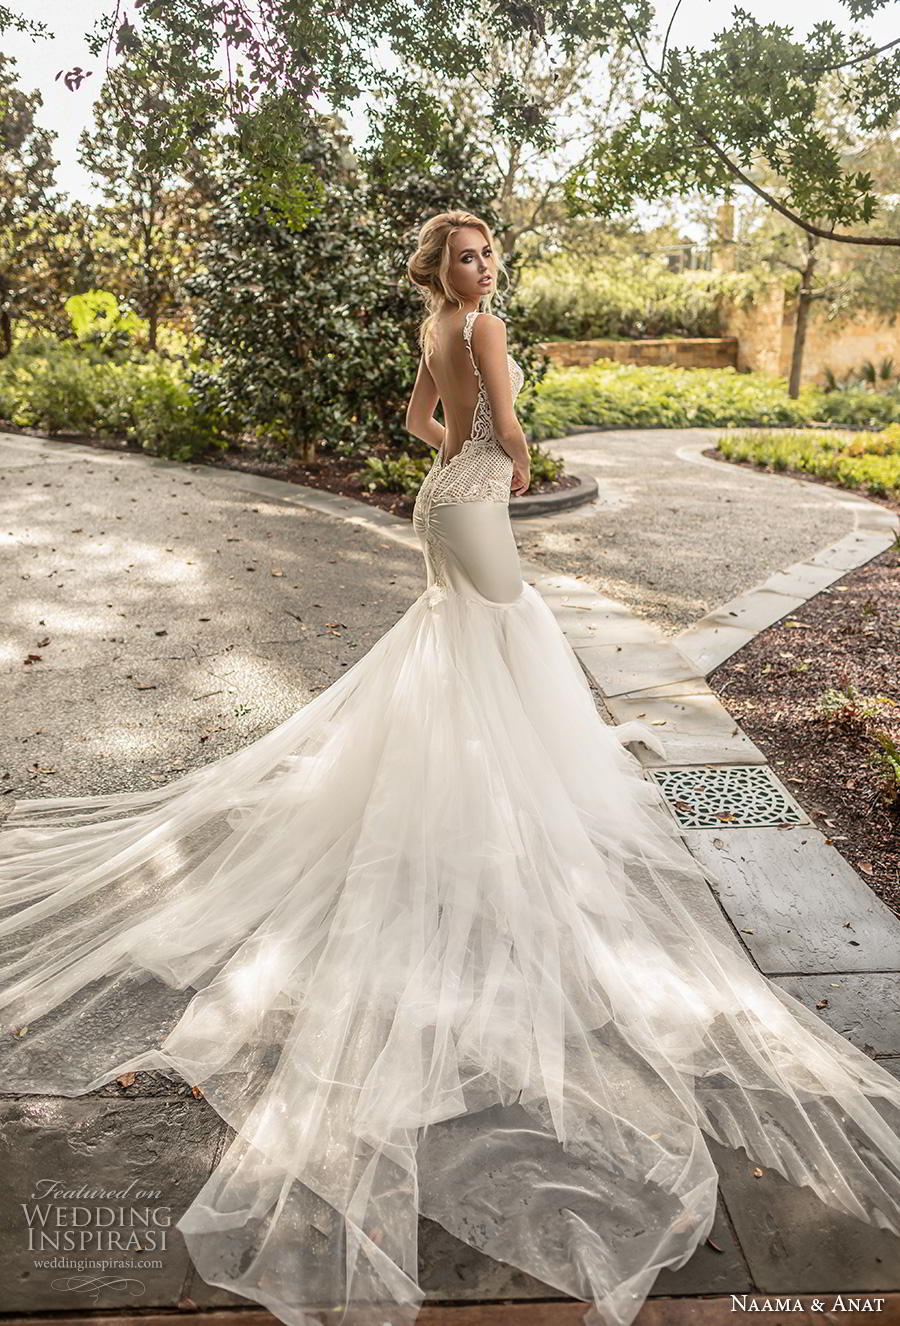 naama anat fall 2019 couture bridal sleeveless with strap sweetheart neckline heavily embellished bodice elegant mermaid wedding dress low open back backless royal train (3) bv